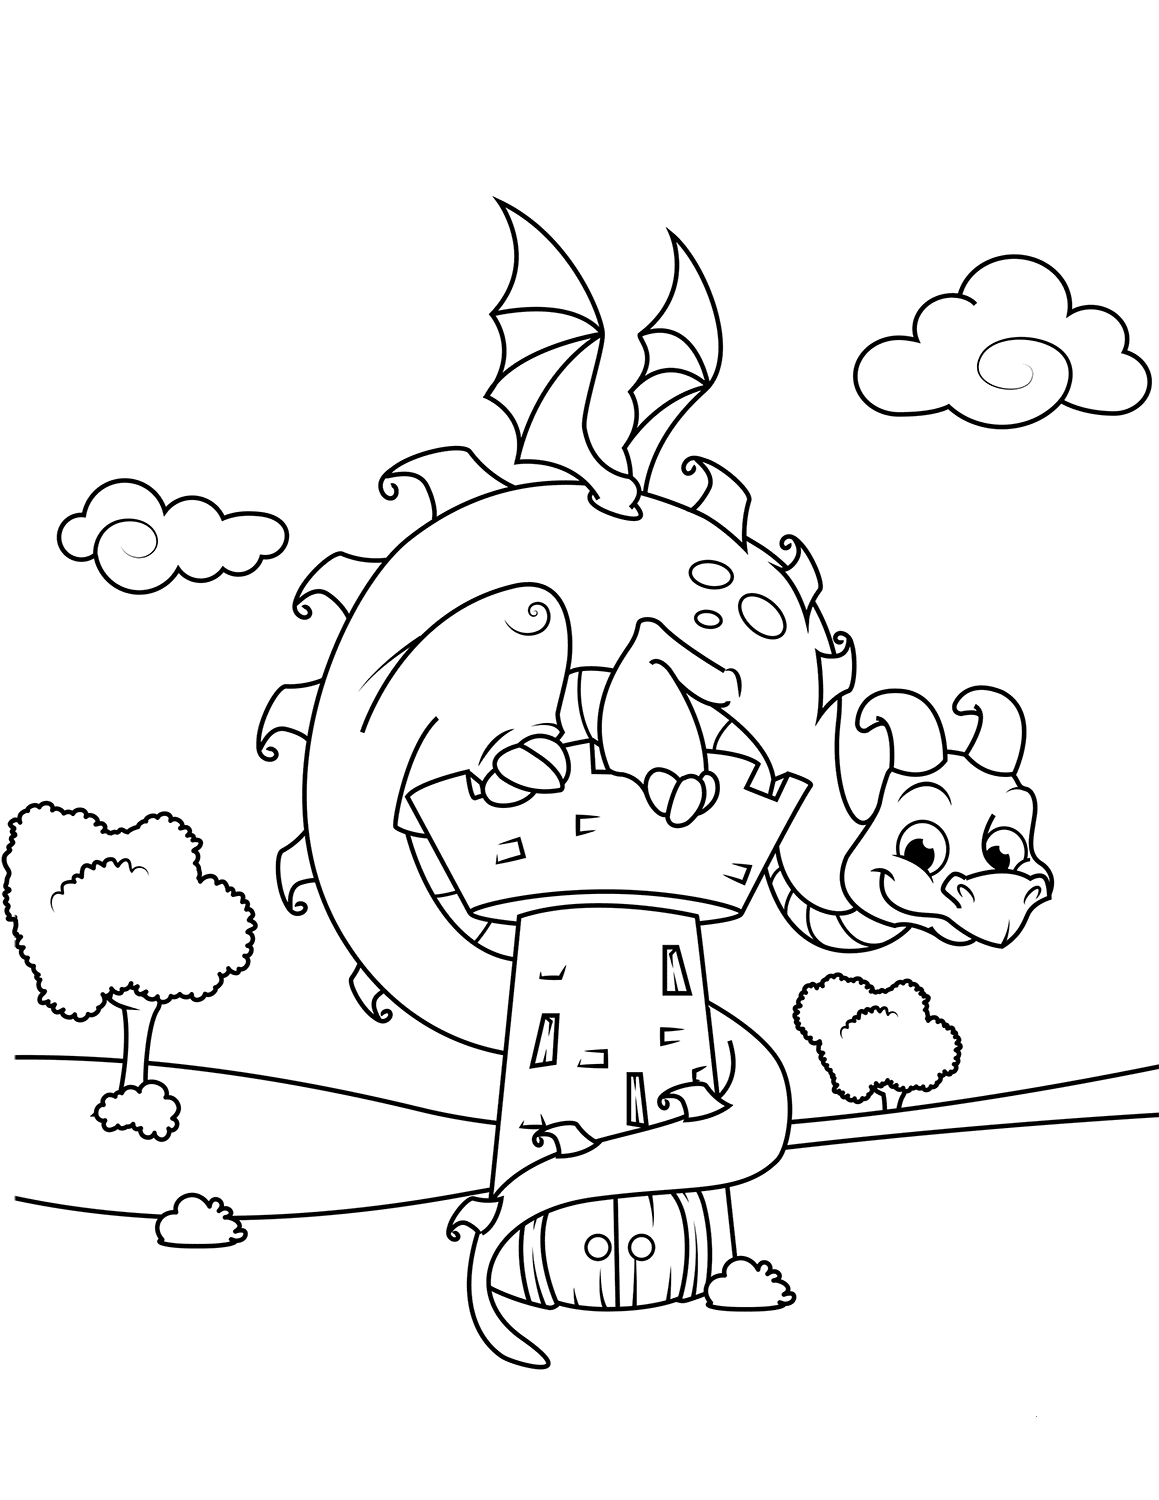 Dragon And Tower Coloring Pages